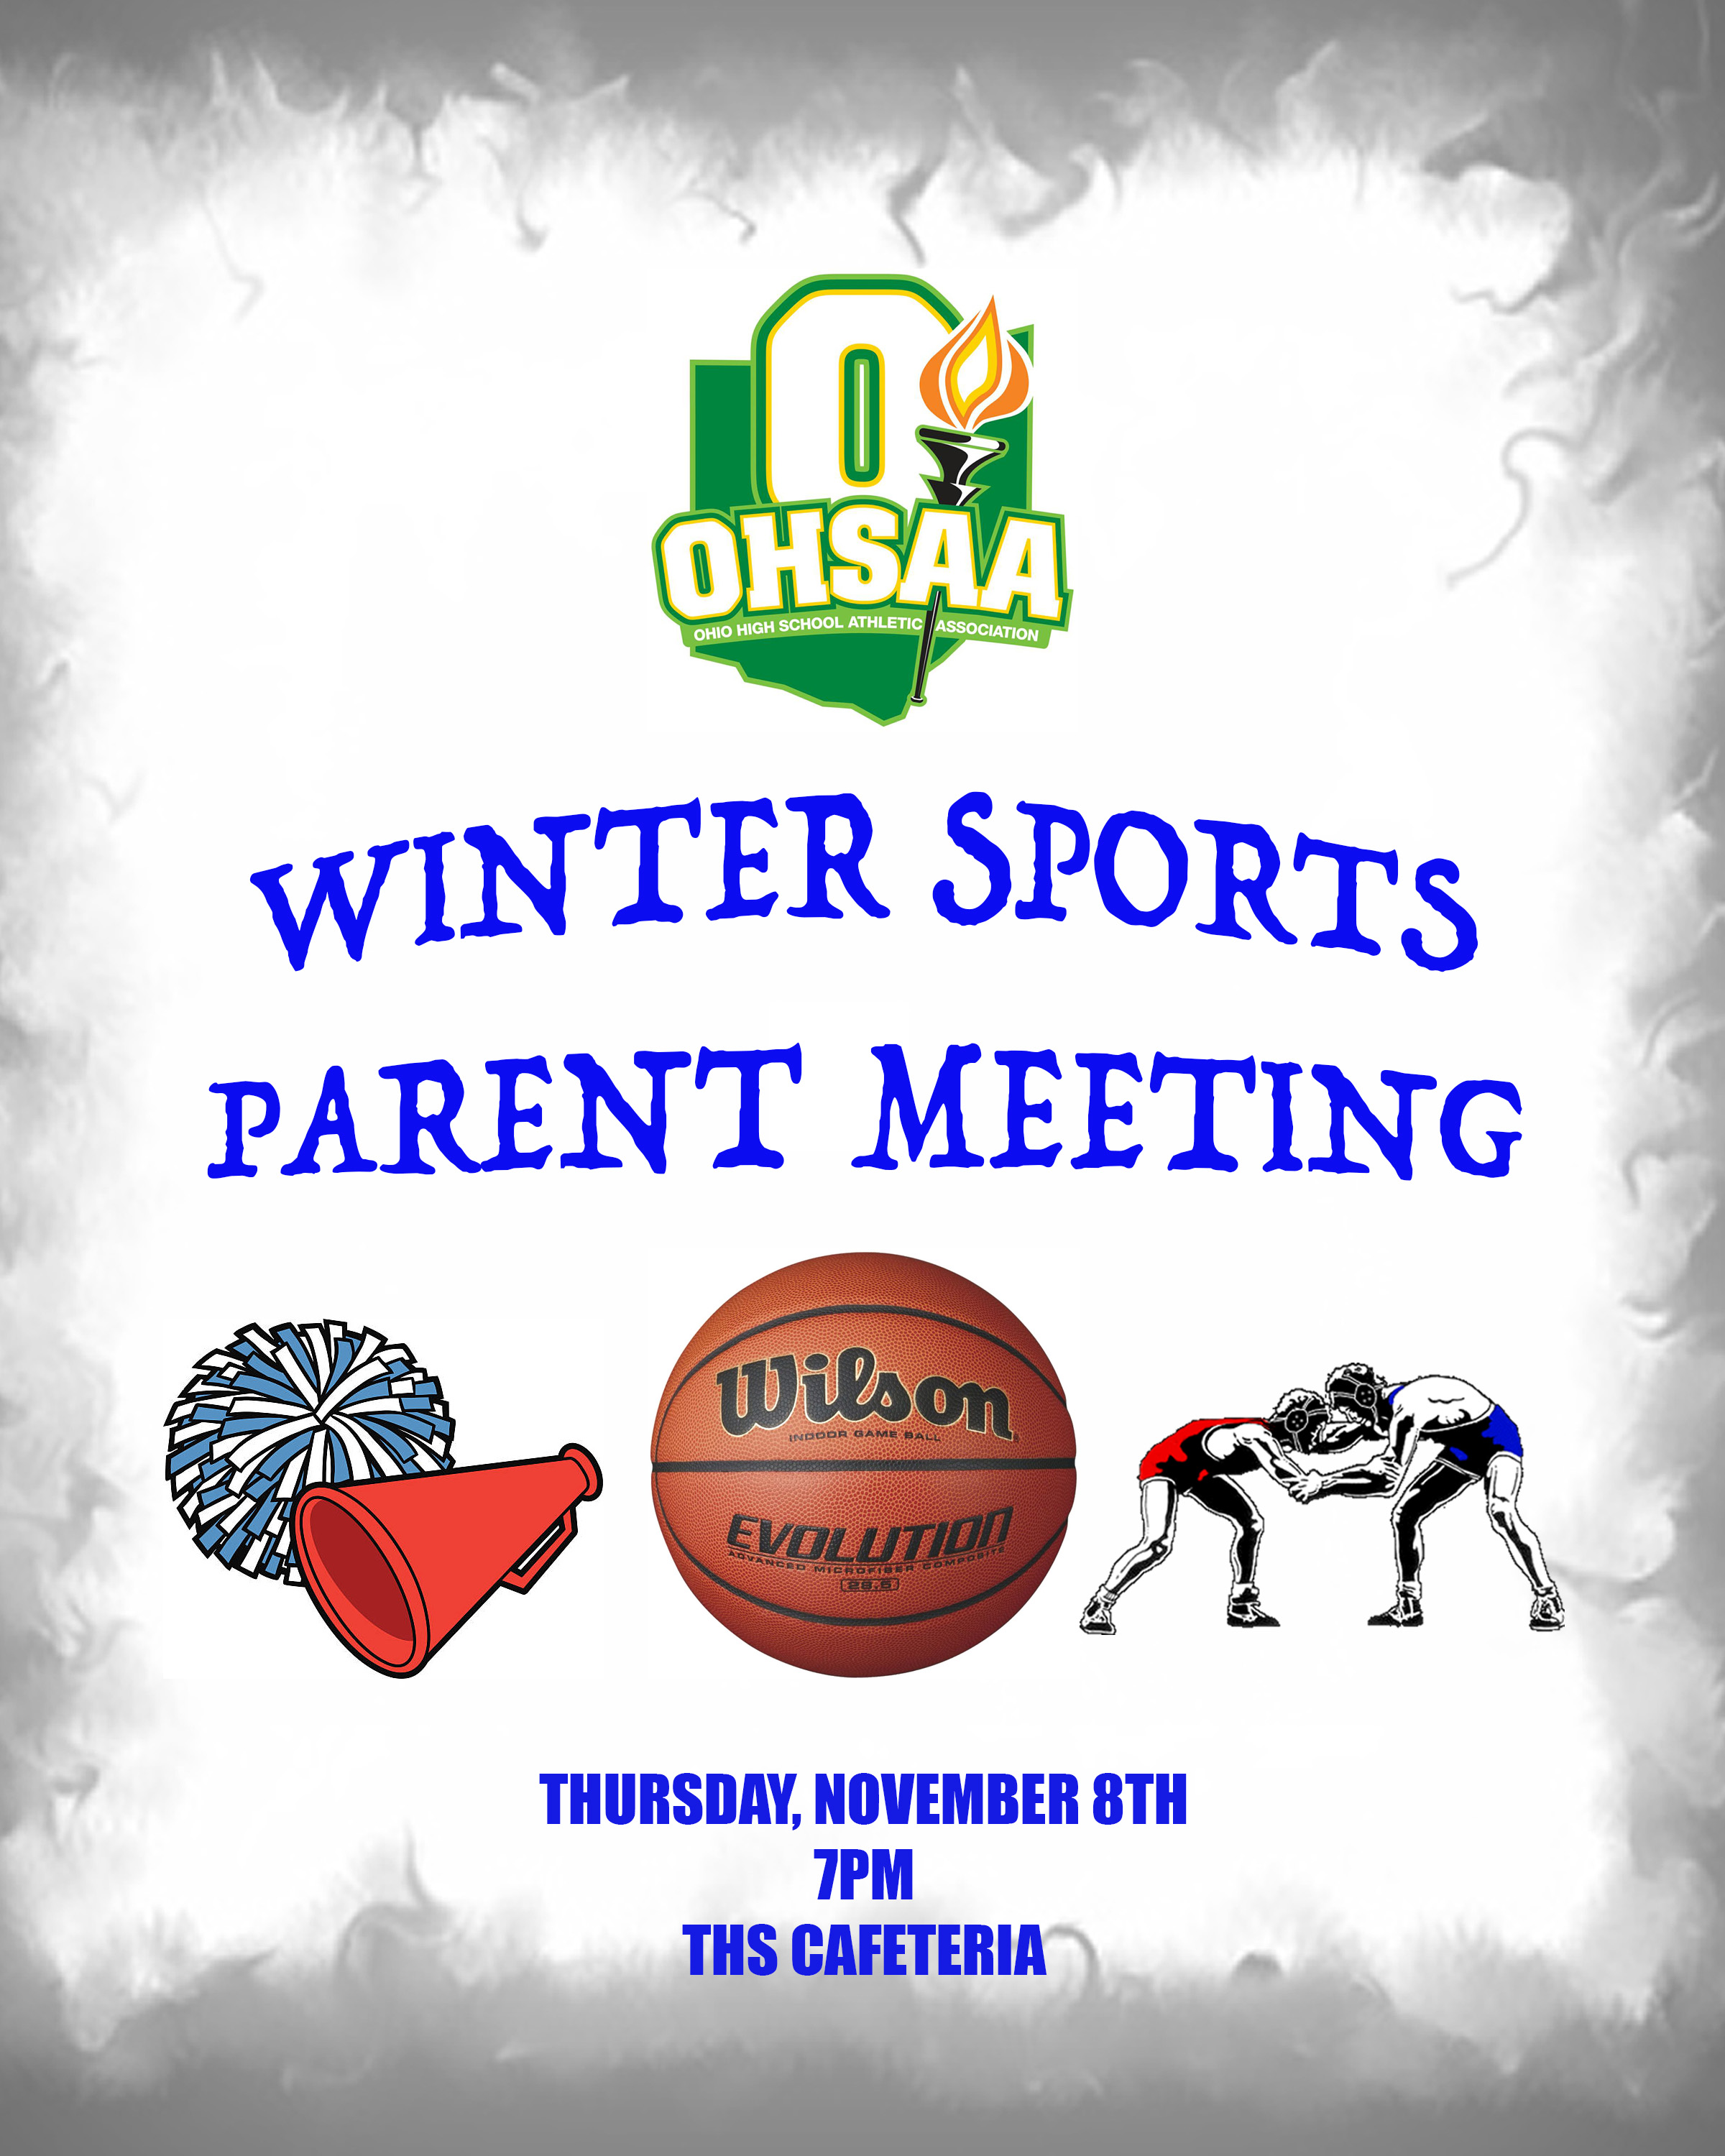 MANDATORY OHSAA WINTER PARENT MEETING: